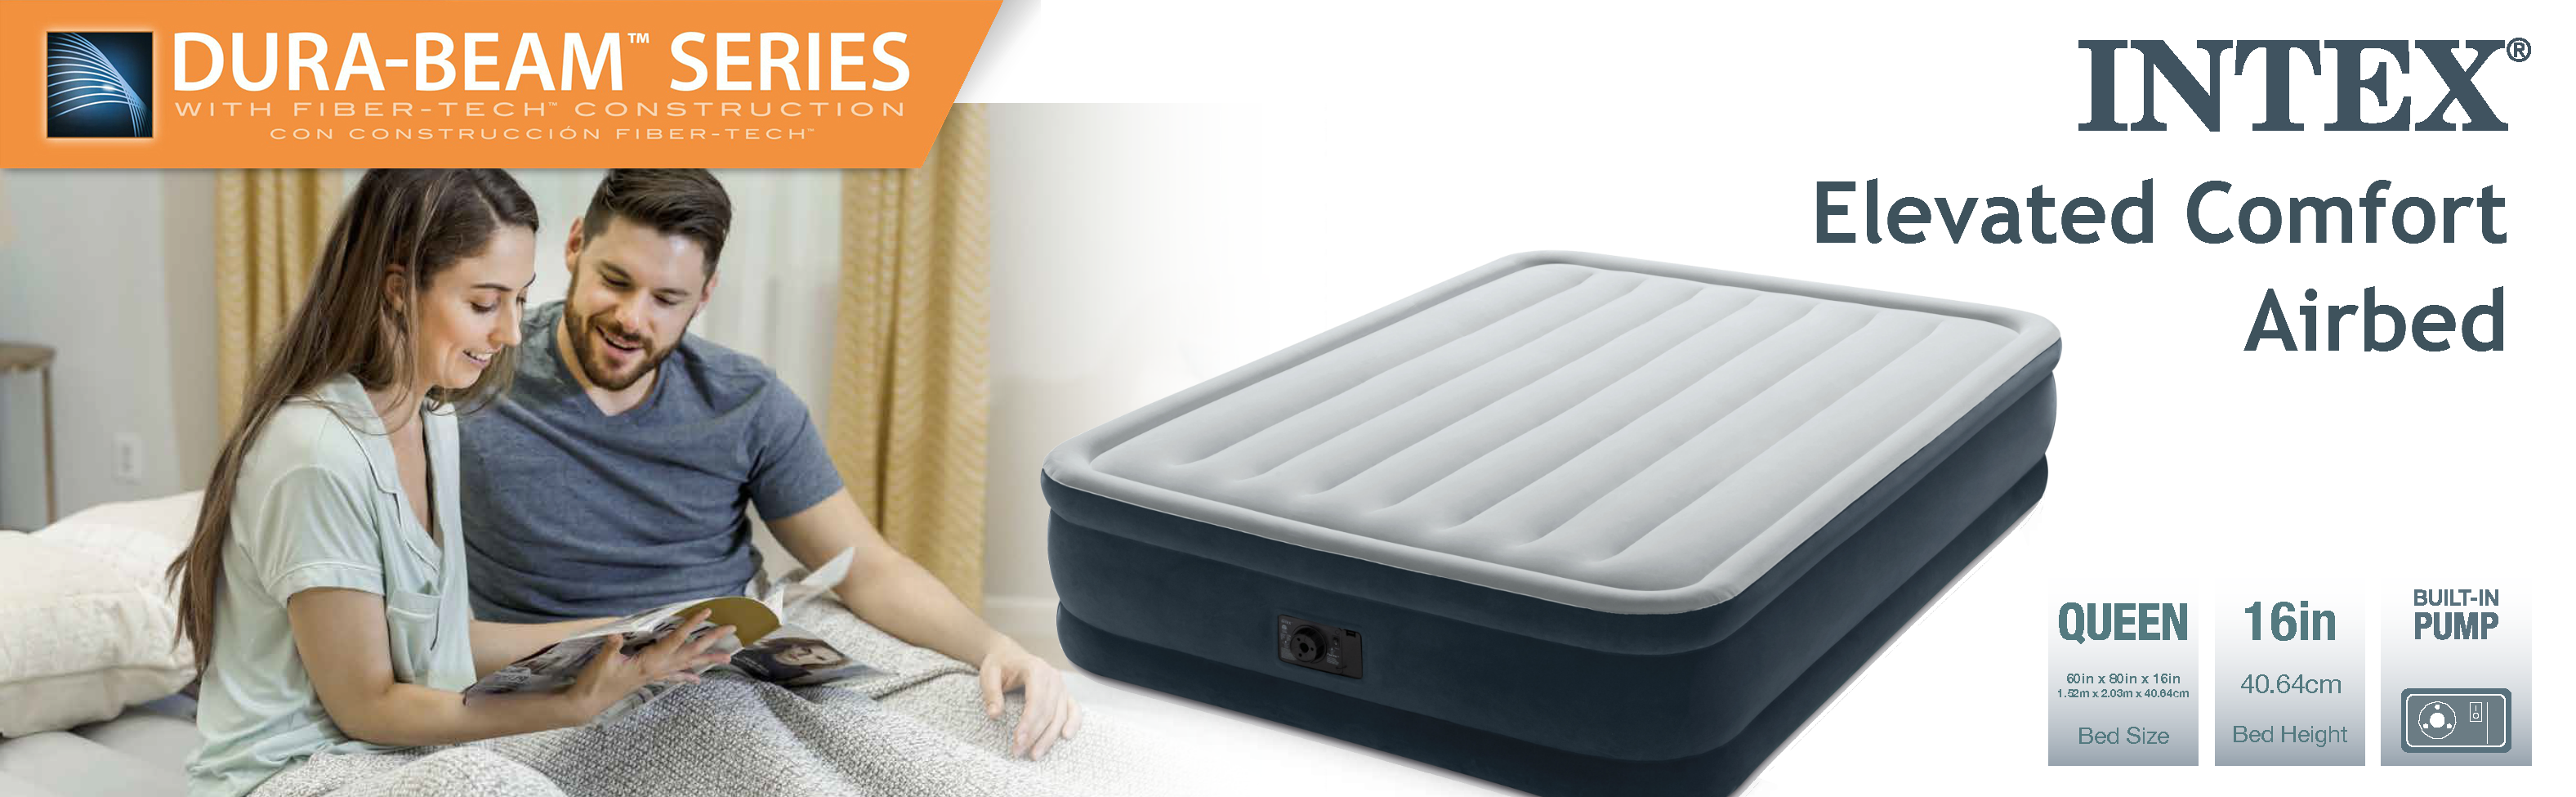 Intex Dura Beam Series Elevated Comfort Airbed With Built